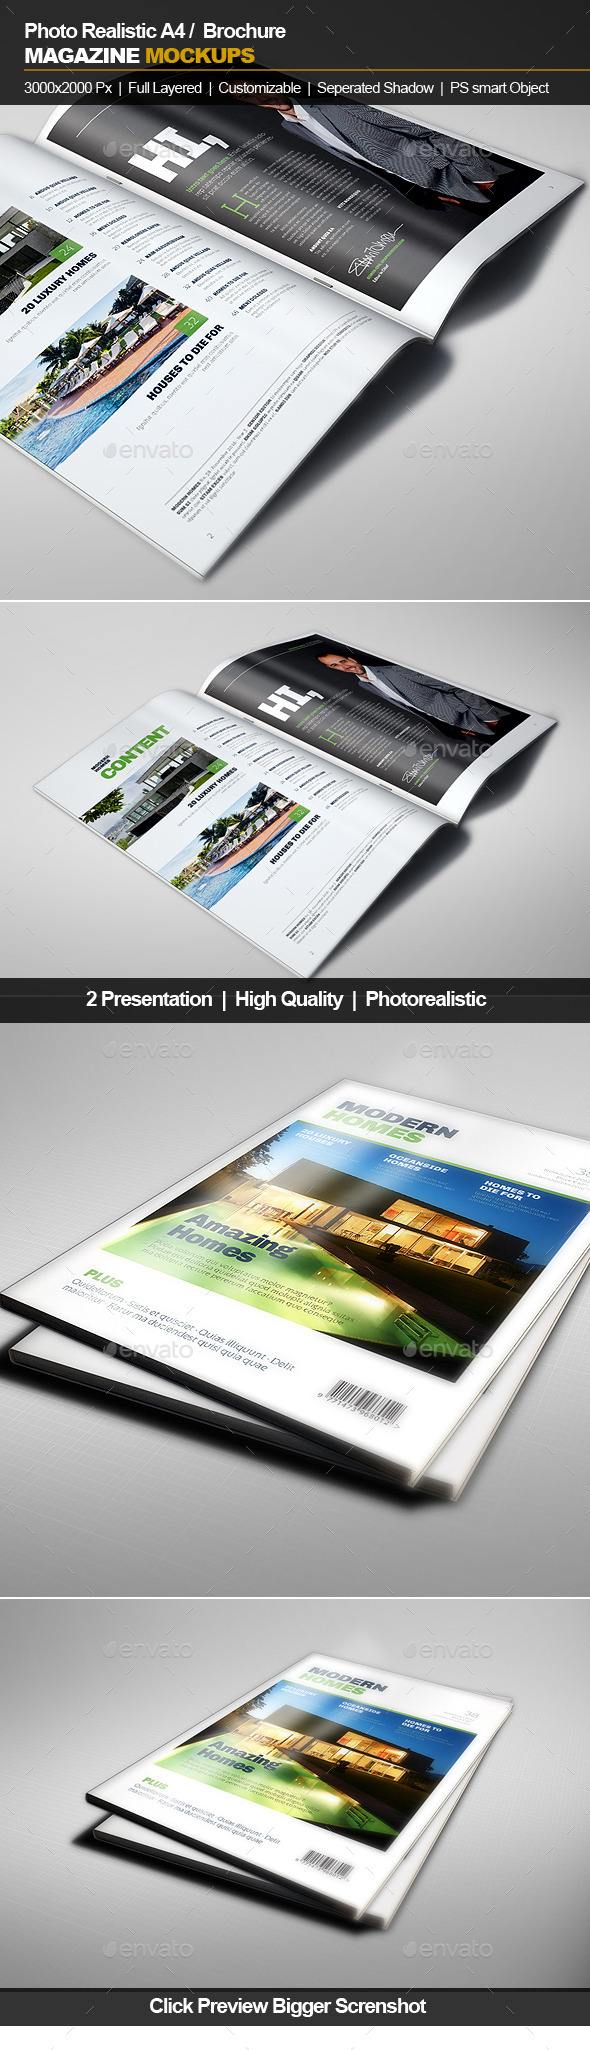 GraphicRiver A4 Brochure Magazine Mockup 11842036